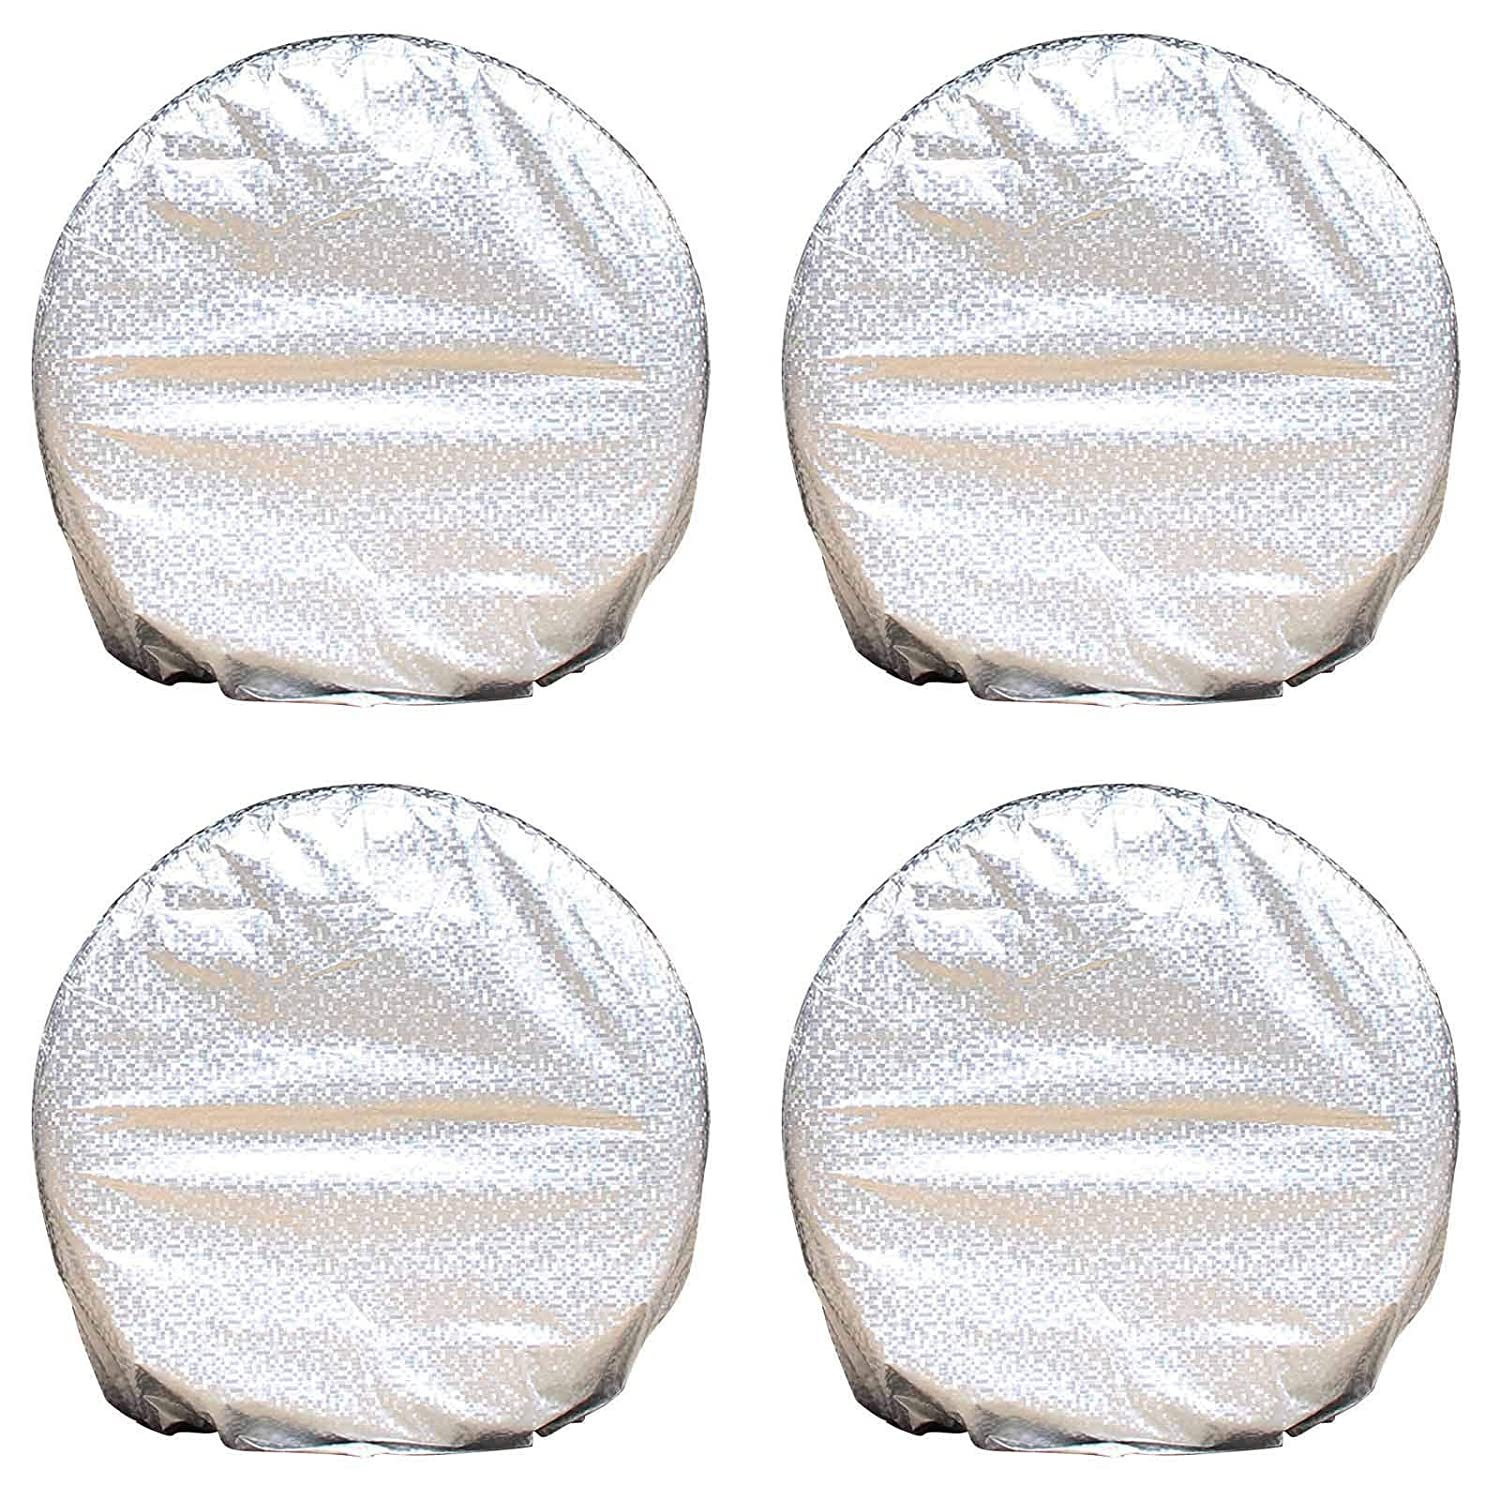 NEVERLAND Tire Covers, Heavy Duty Waterproof Oxford Cloth Fabric Tire Sun Protectors, Fits 27'-30' Tire Diameters RV Trailer Camper Car Truck Set of 4 Fits 27-30 Tire Diameters RV Trailer Camper Car Truck Set of 4